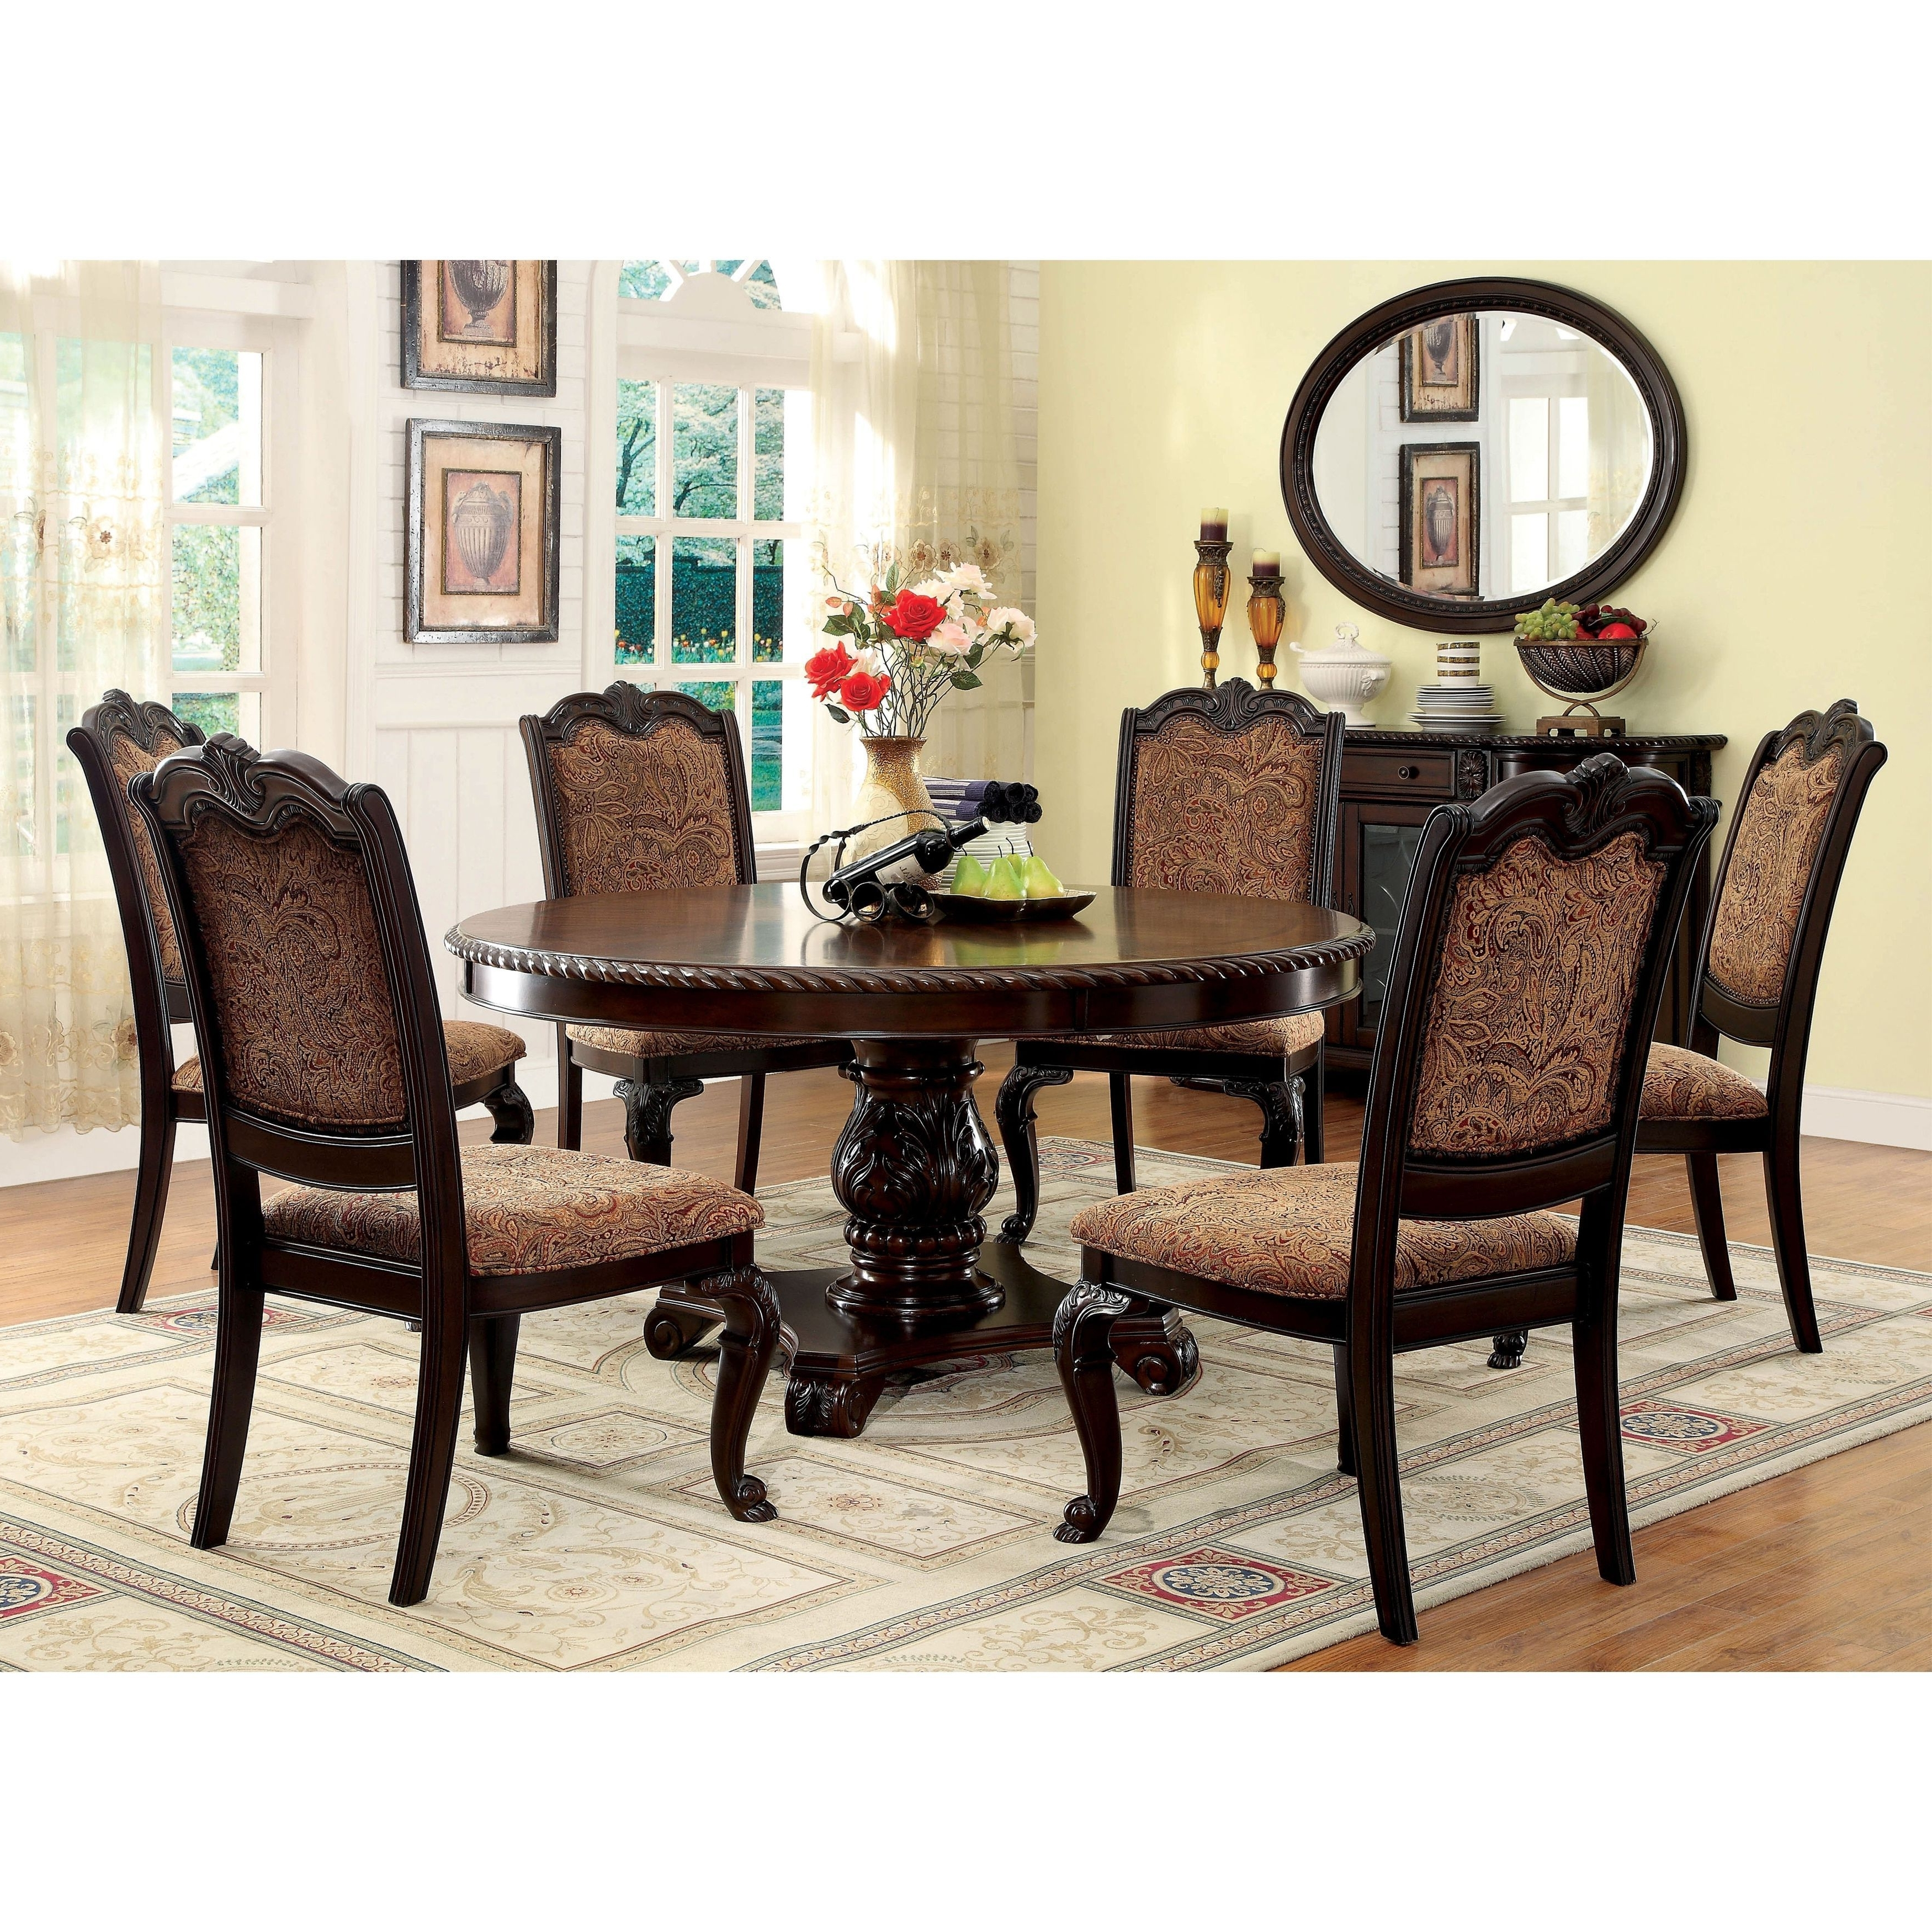 Famous Norwood 7 Piece Rectangle Extension Dining Sets With Regard To Furniture Of America Oskarre Iii Brown Cherry (Red) 7 Piece Formal (View 13 of 25)